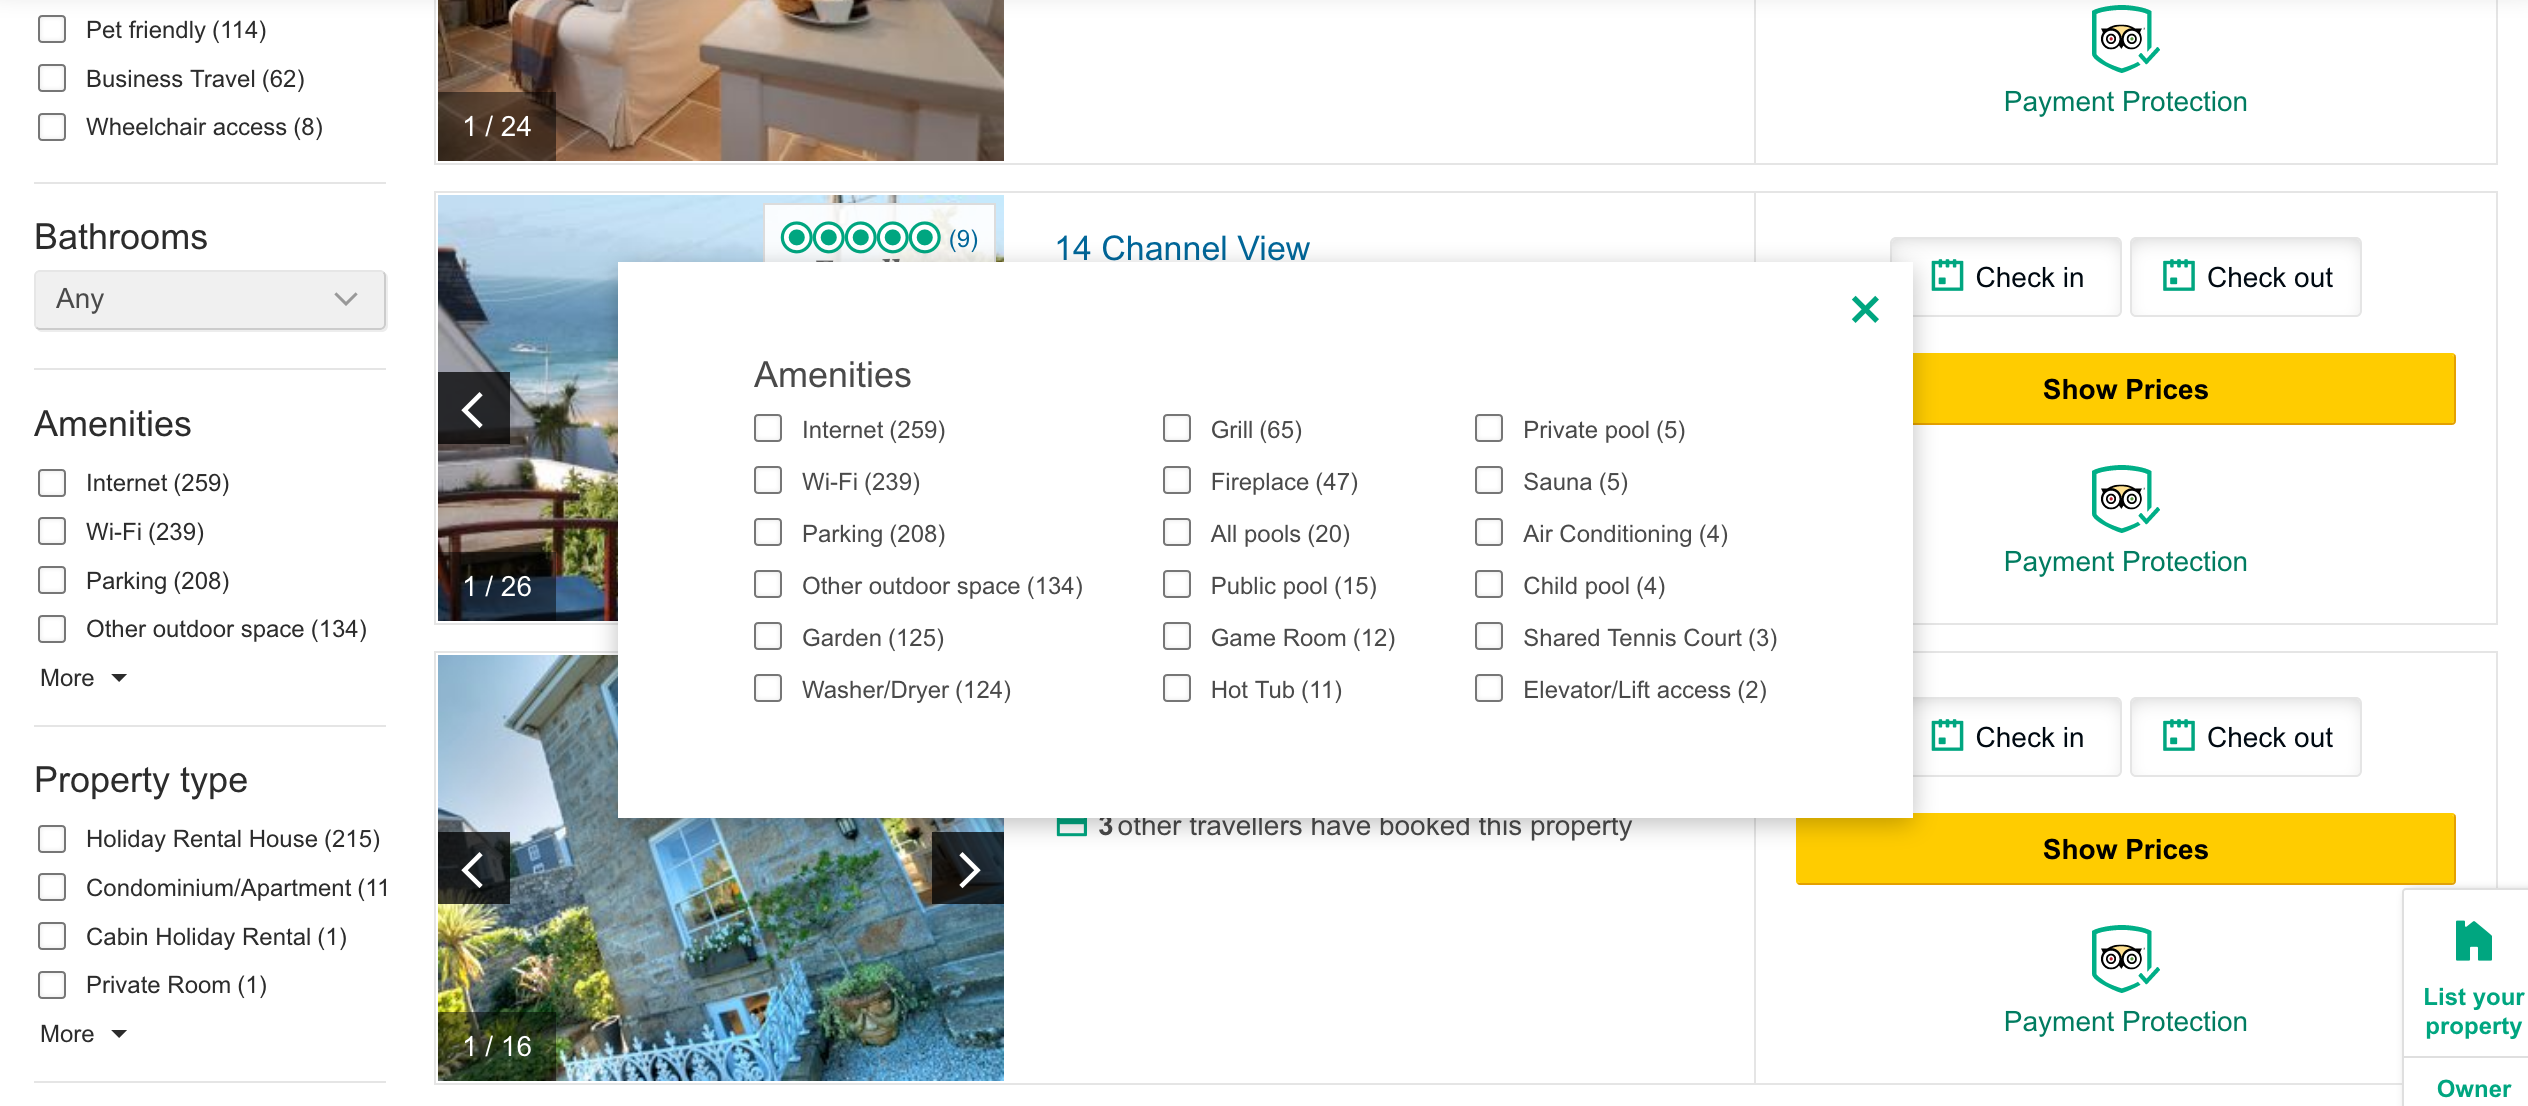 TripAdvisor listings page filters pop-up